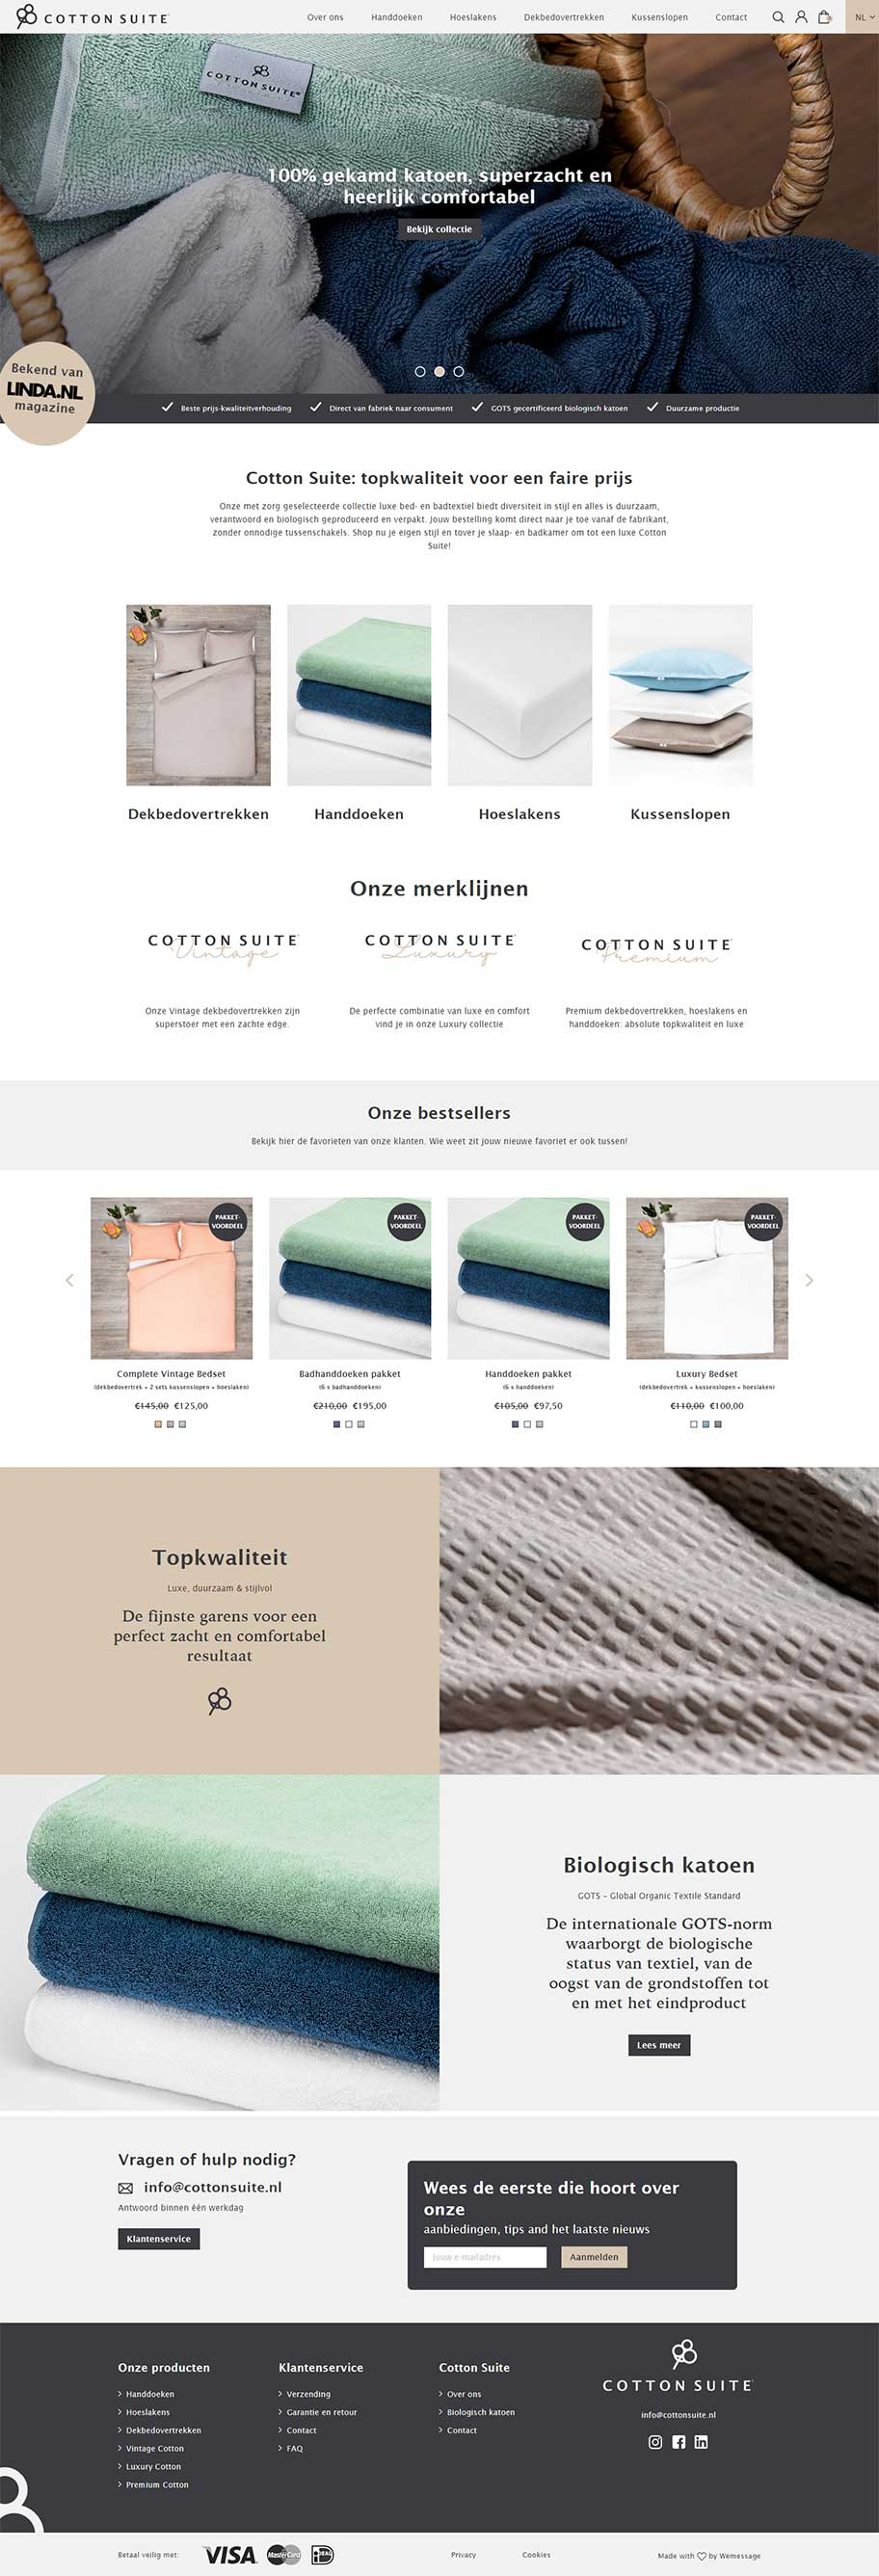 Cotton Suite website voorbeeld op desktop formaat